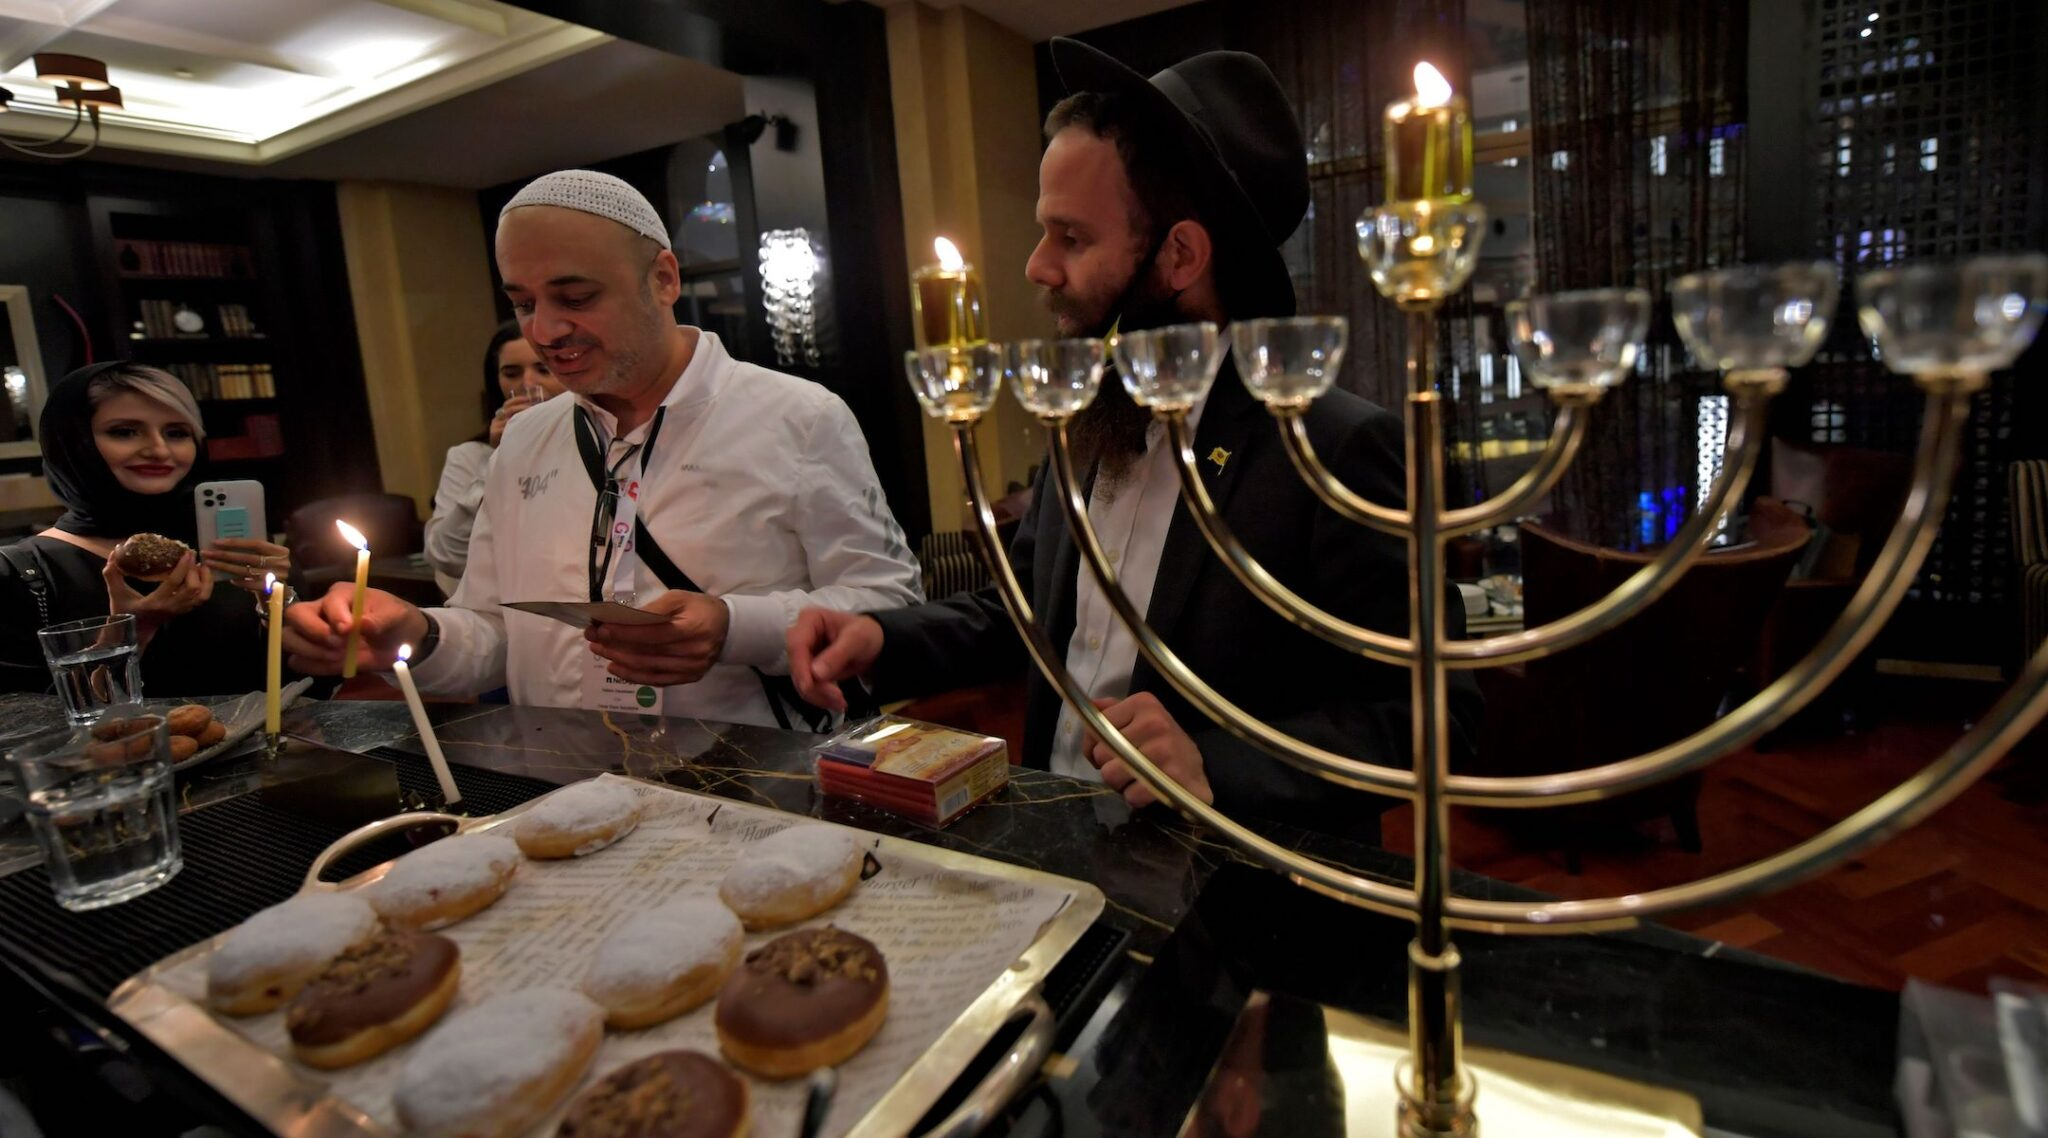 Israelis celebrate Hanukkah at a hotel in Dubai, Dec. 10, 2020. (Photo/JTA-Karim Sahib-AFP via Getty Images)